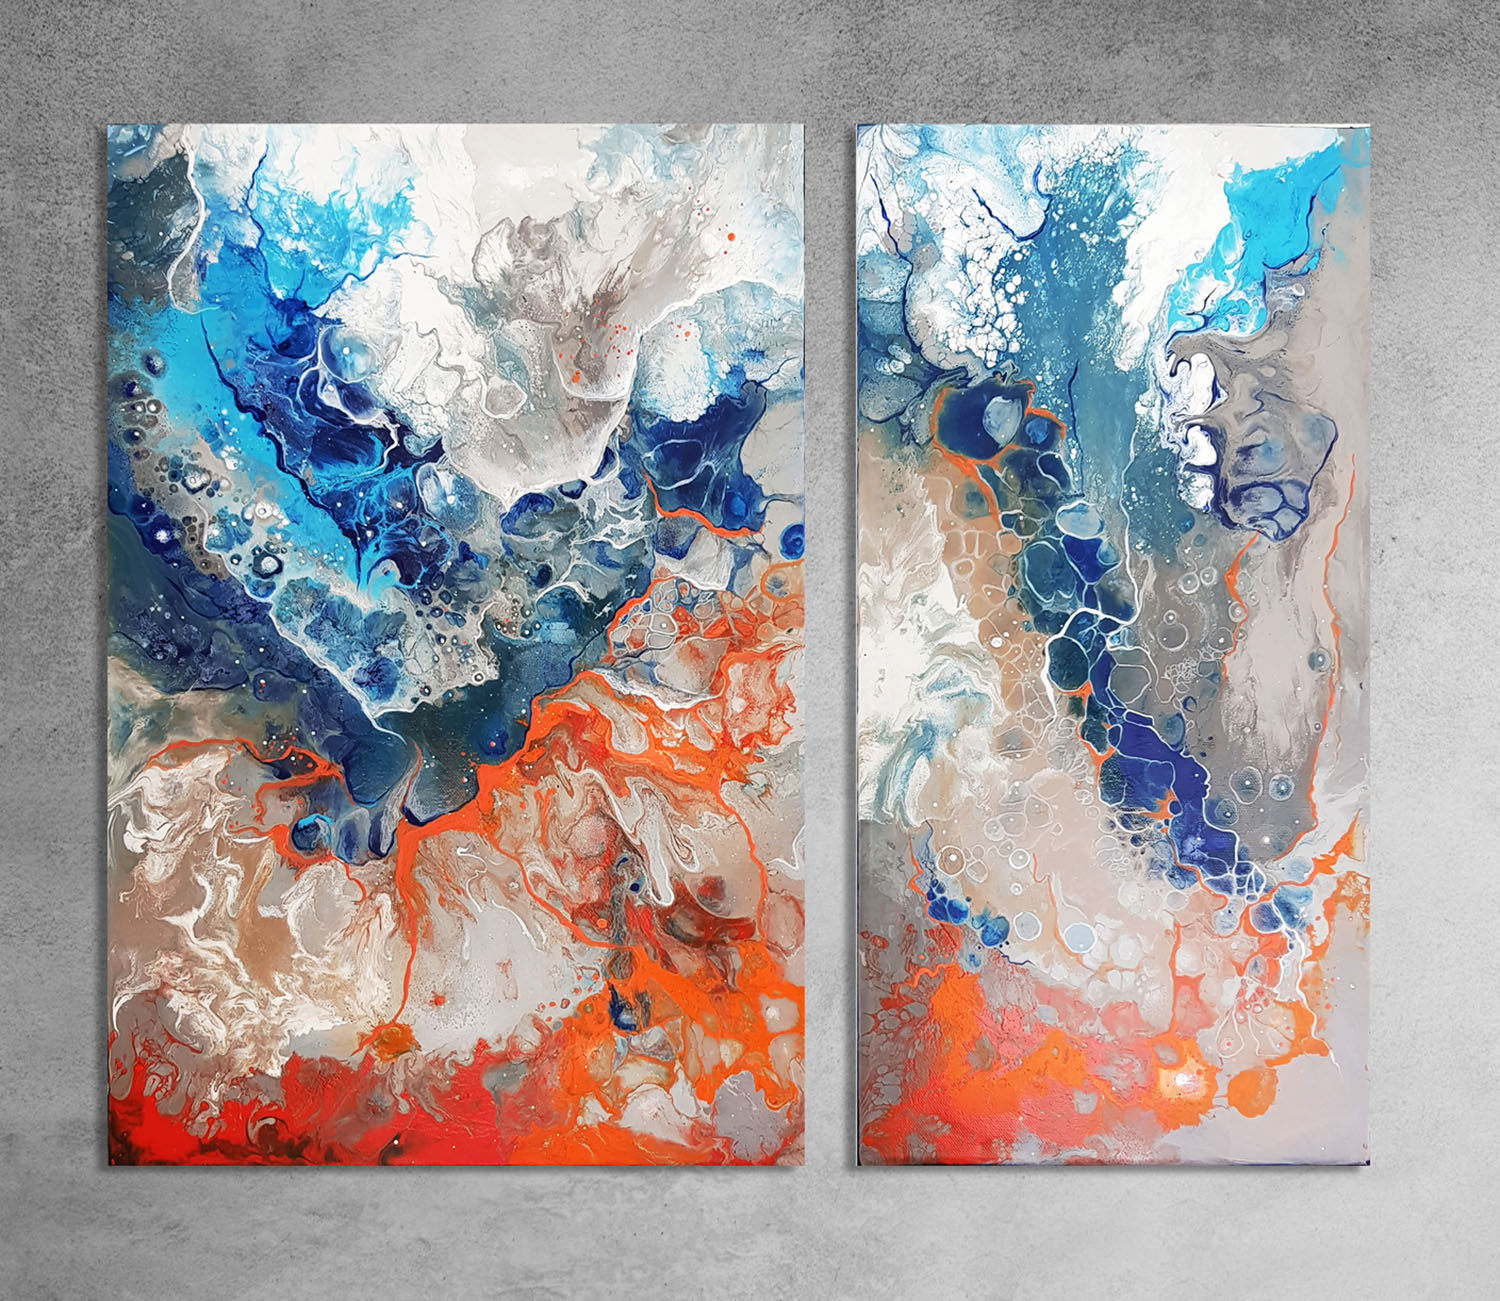 Craters ii  40x60cm and 30x60cm Acrylic and Spray Paint on Canvas.  INQUIRE.